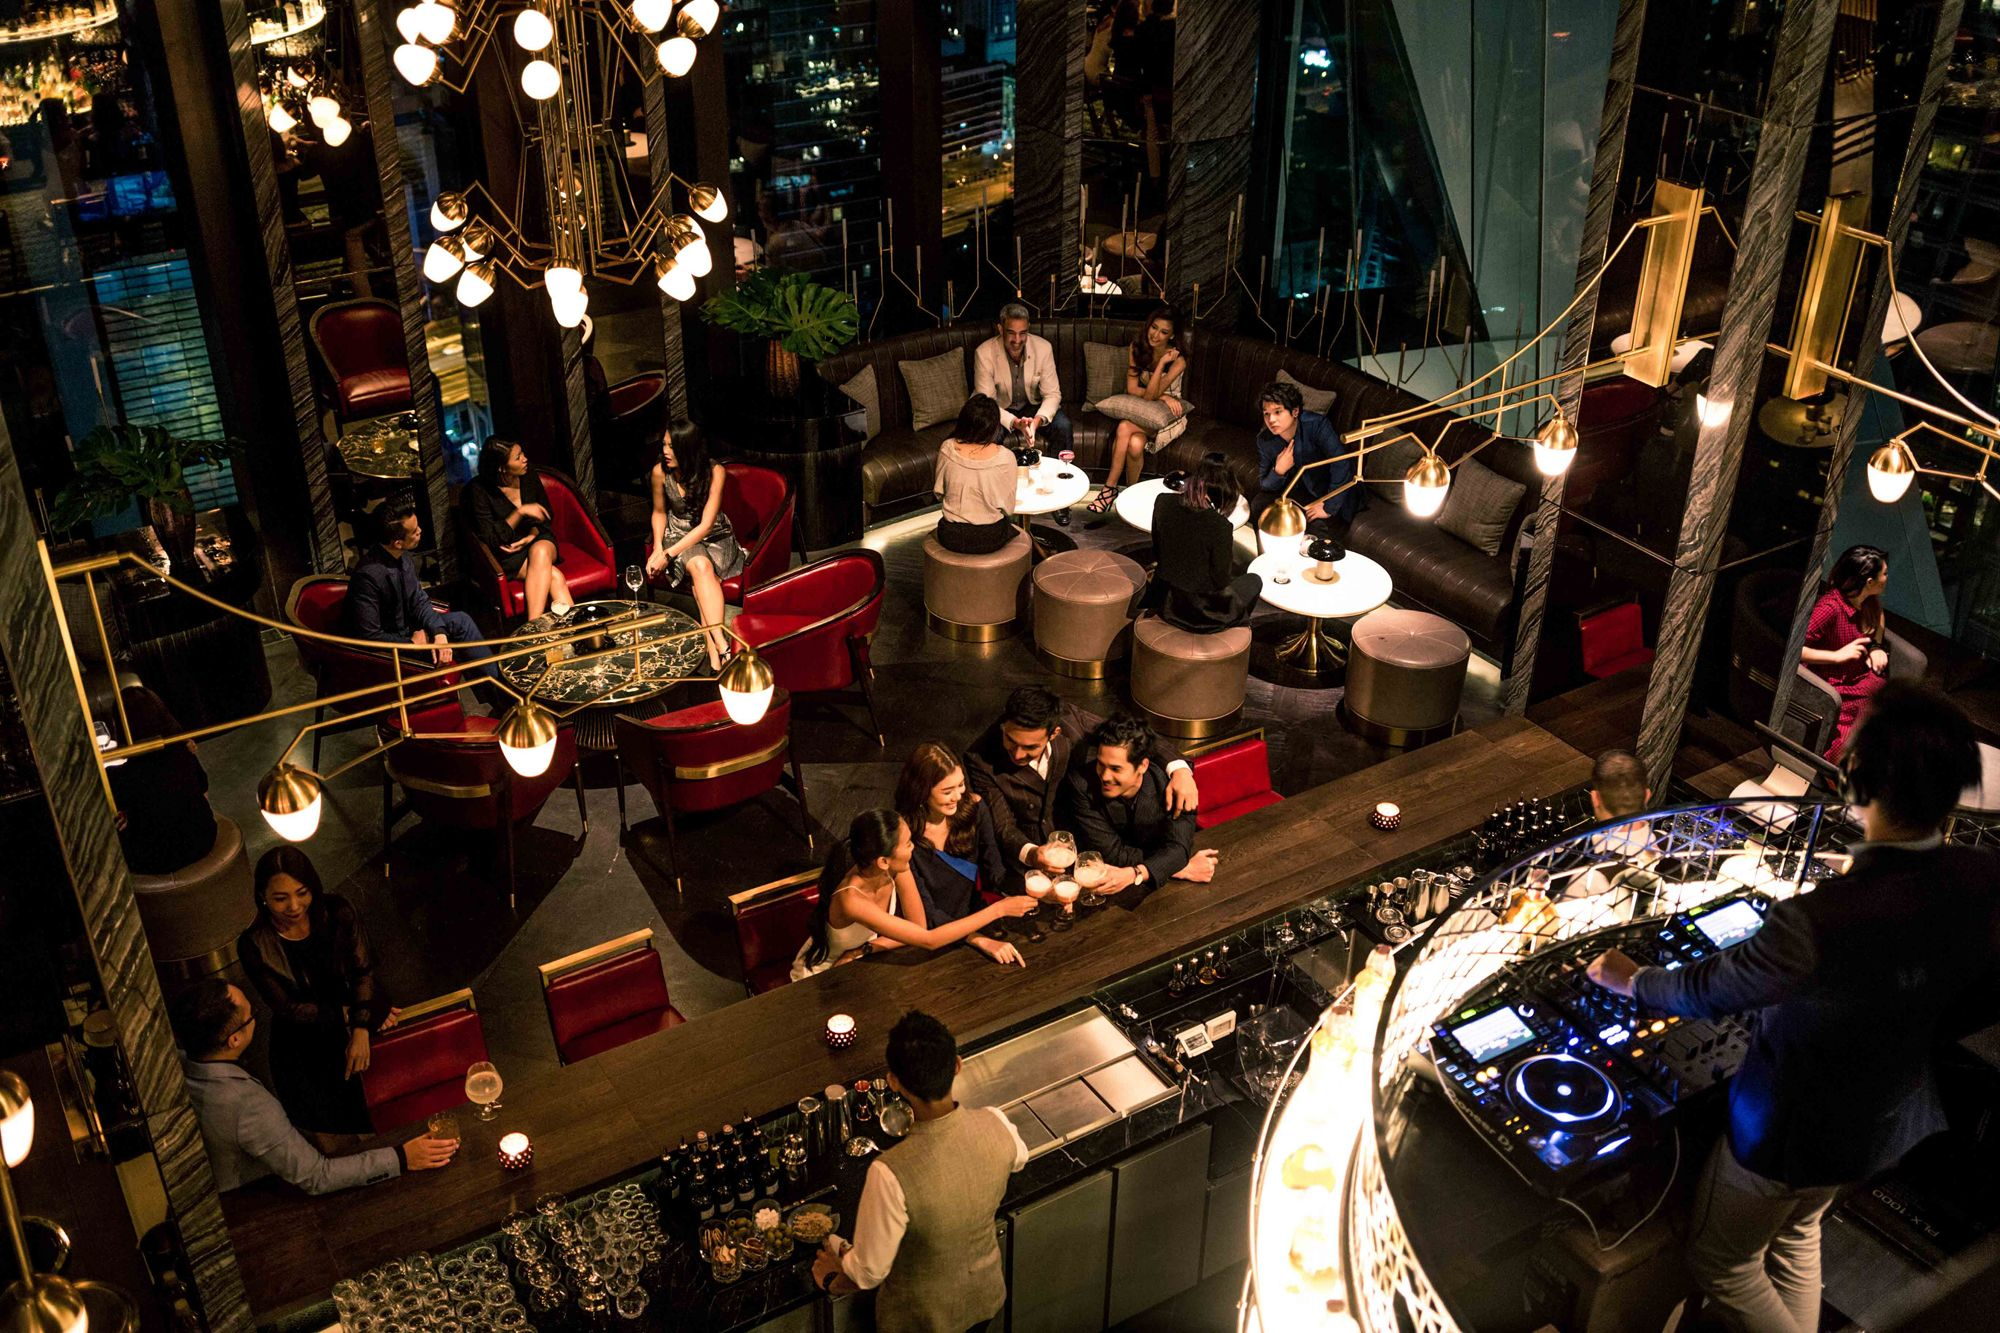 Maggie Choo's - Top Place to Explore Nightlife In Thailand